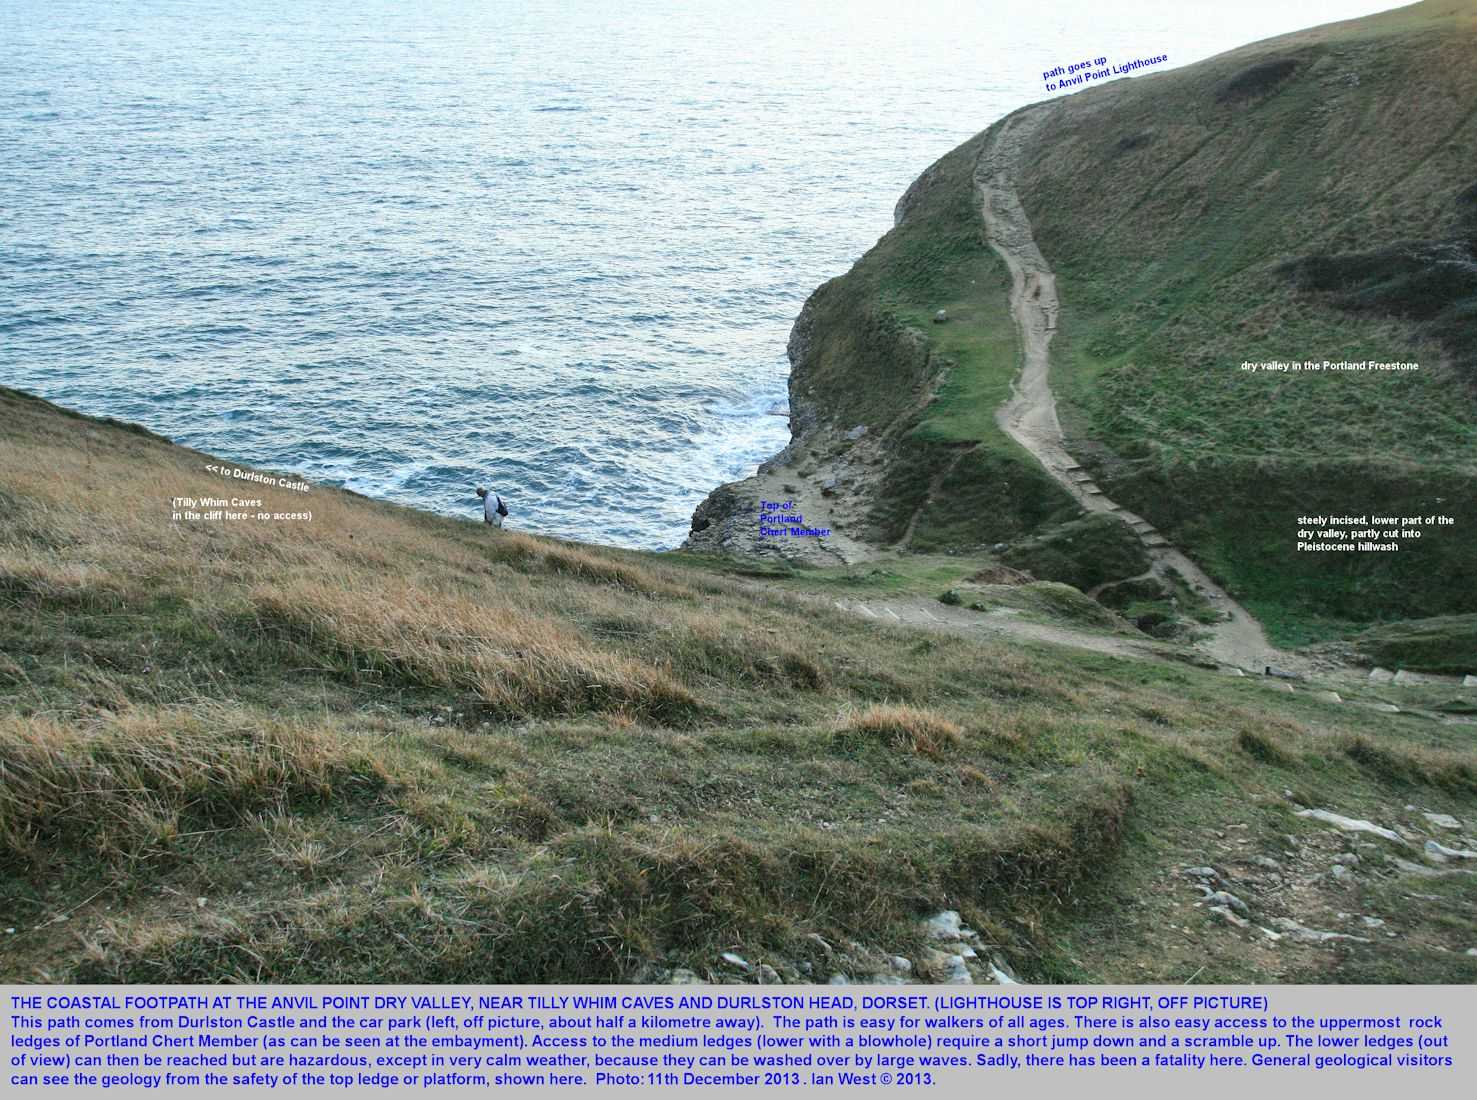 The coastal footpath and slopes at the dry valley, Anvil Point, near Swanage, Dorset, 11th December 2013